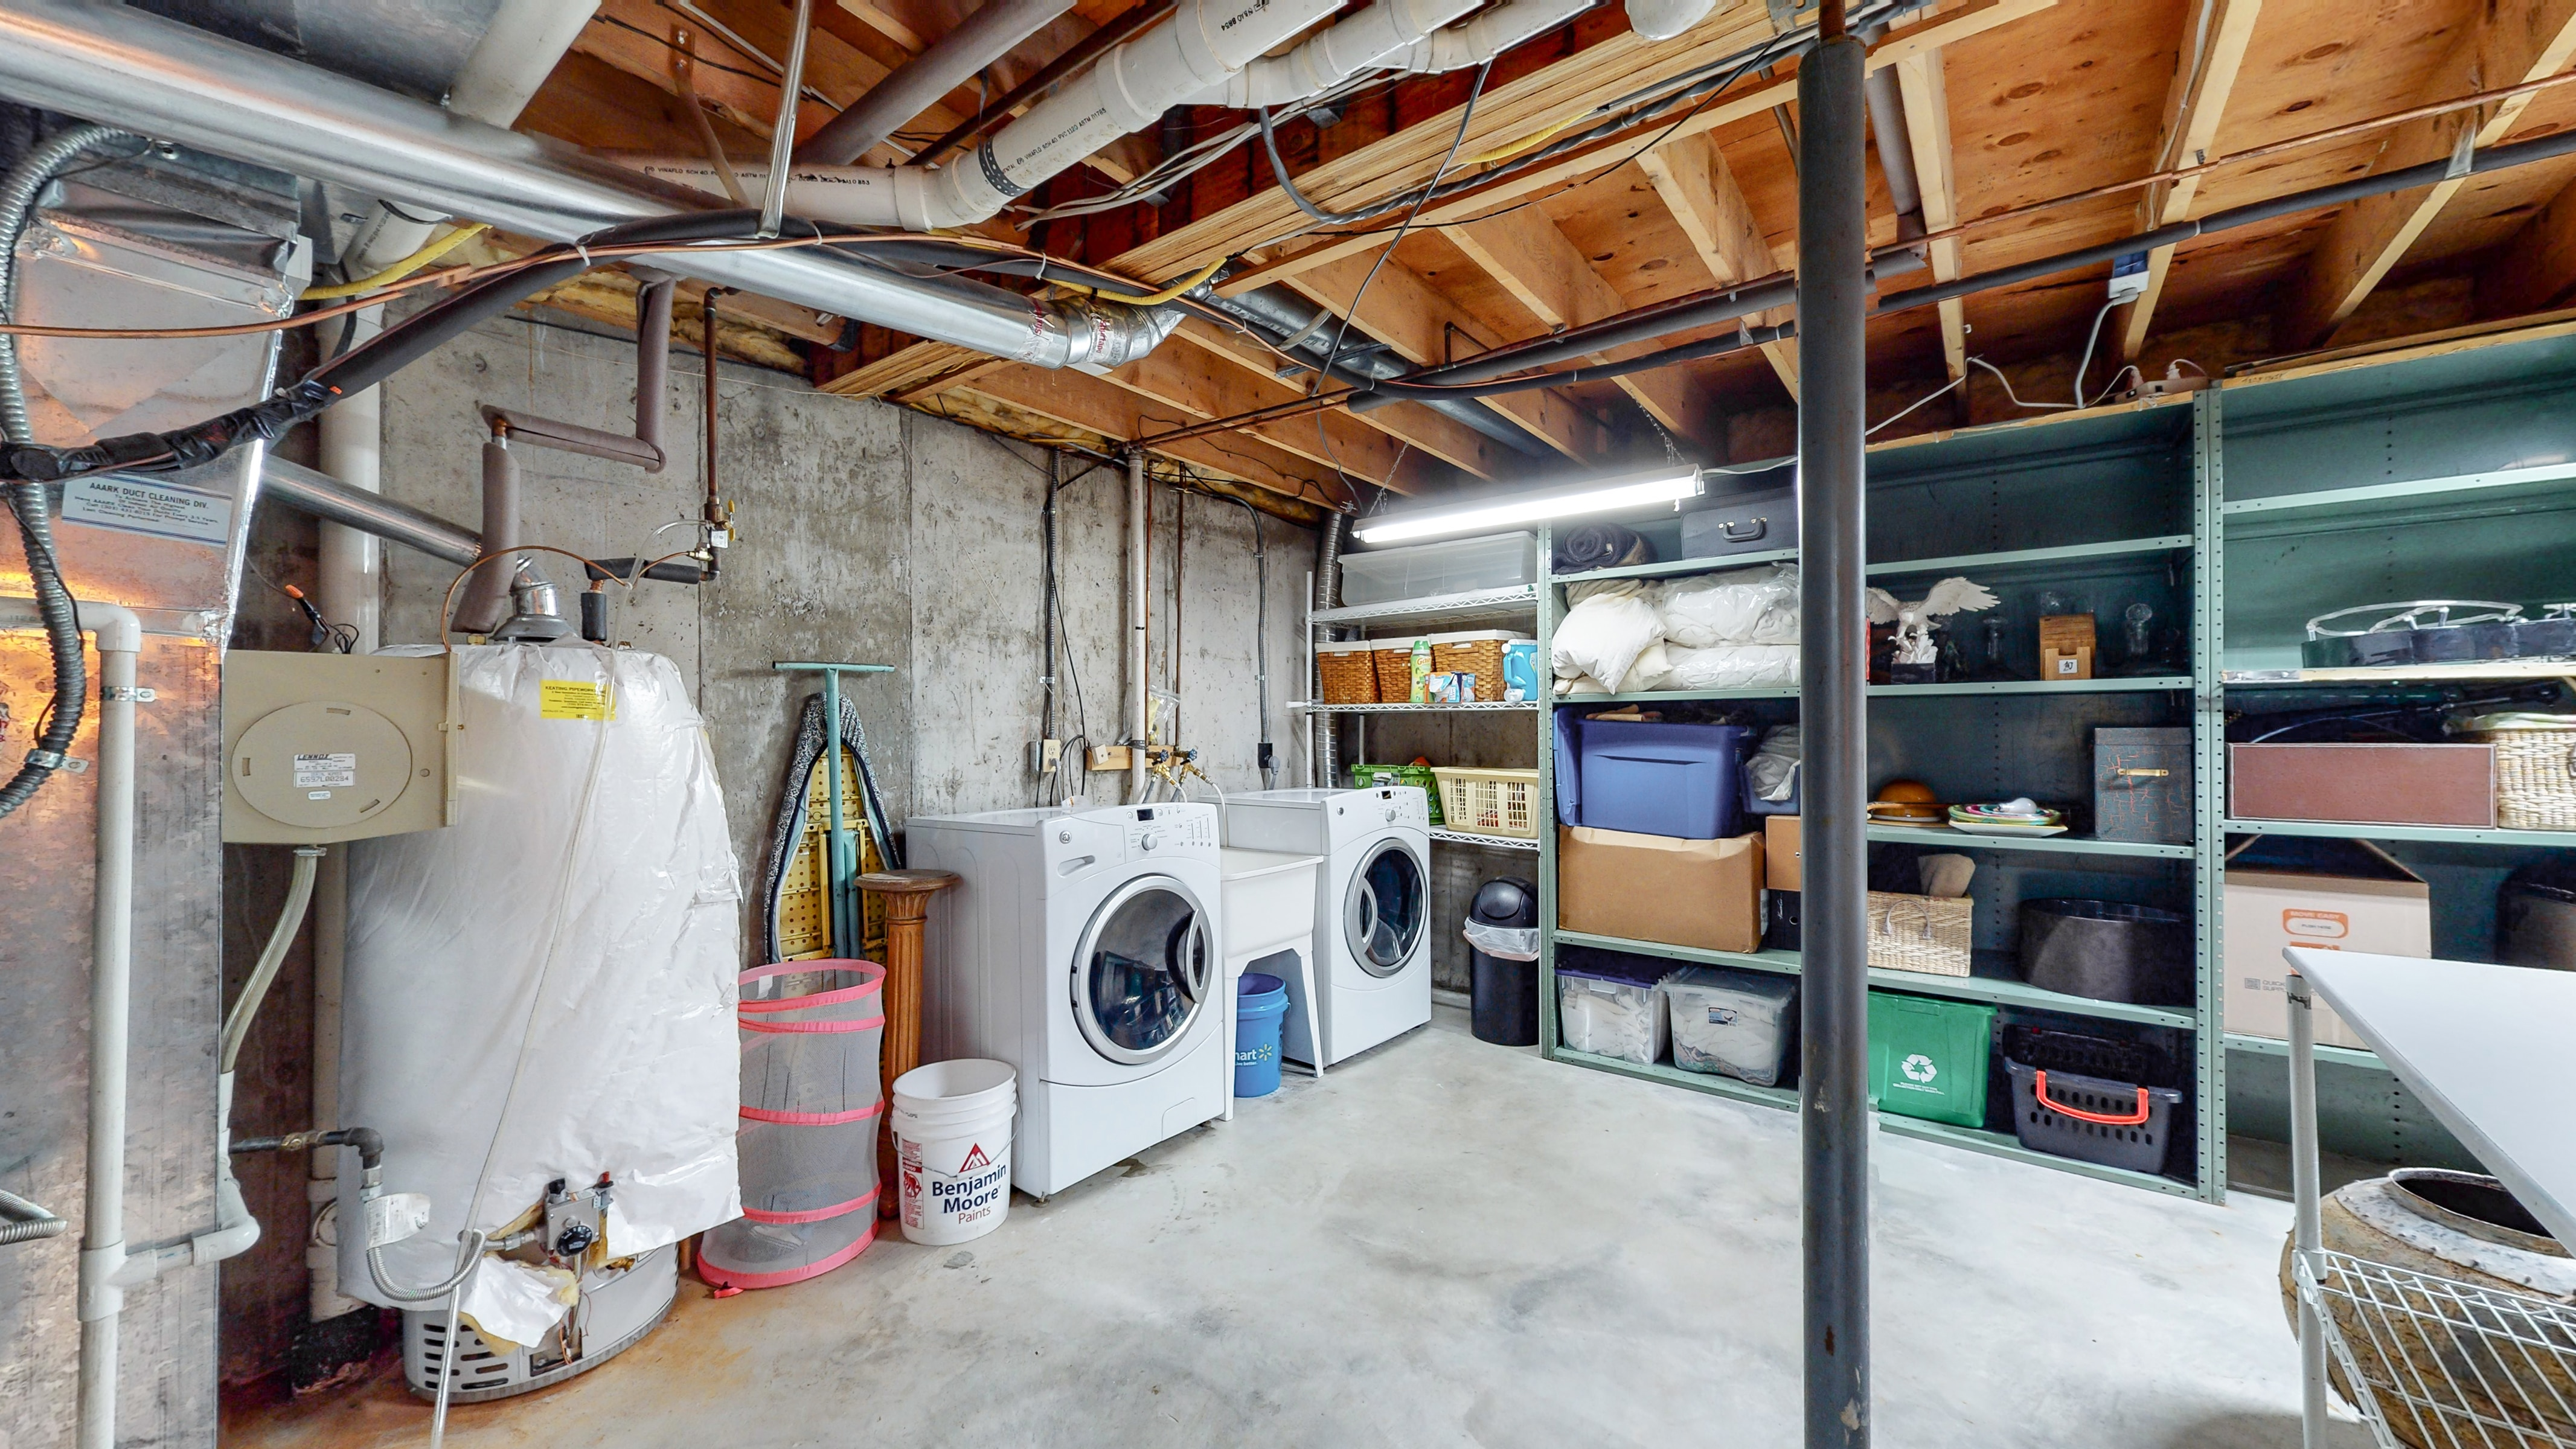 Basement storage area and laundry in Arvada, CO home for sale